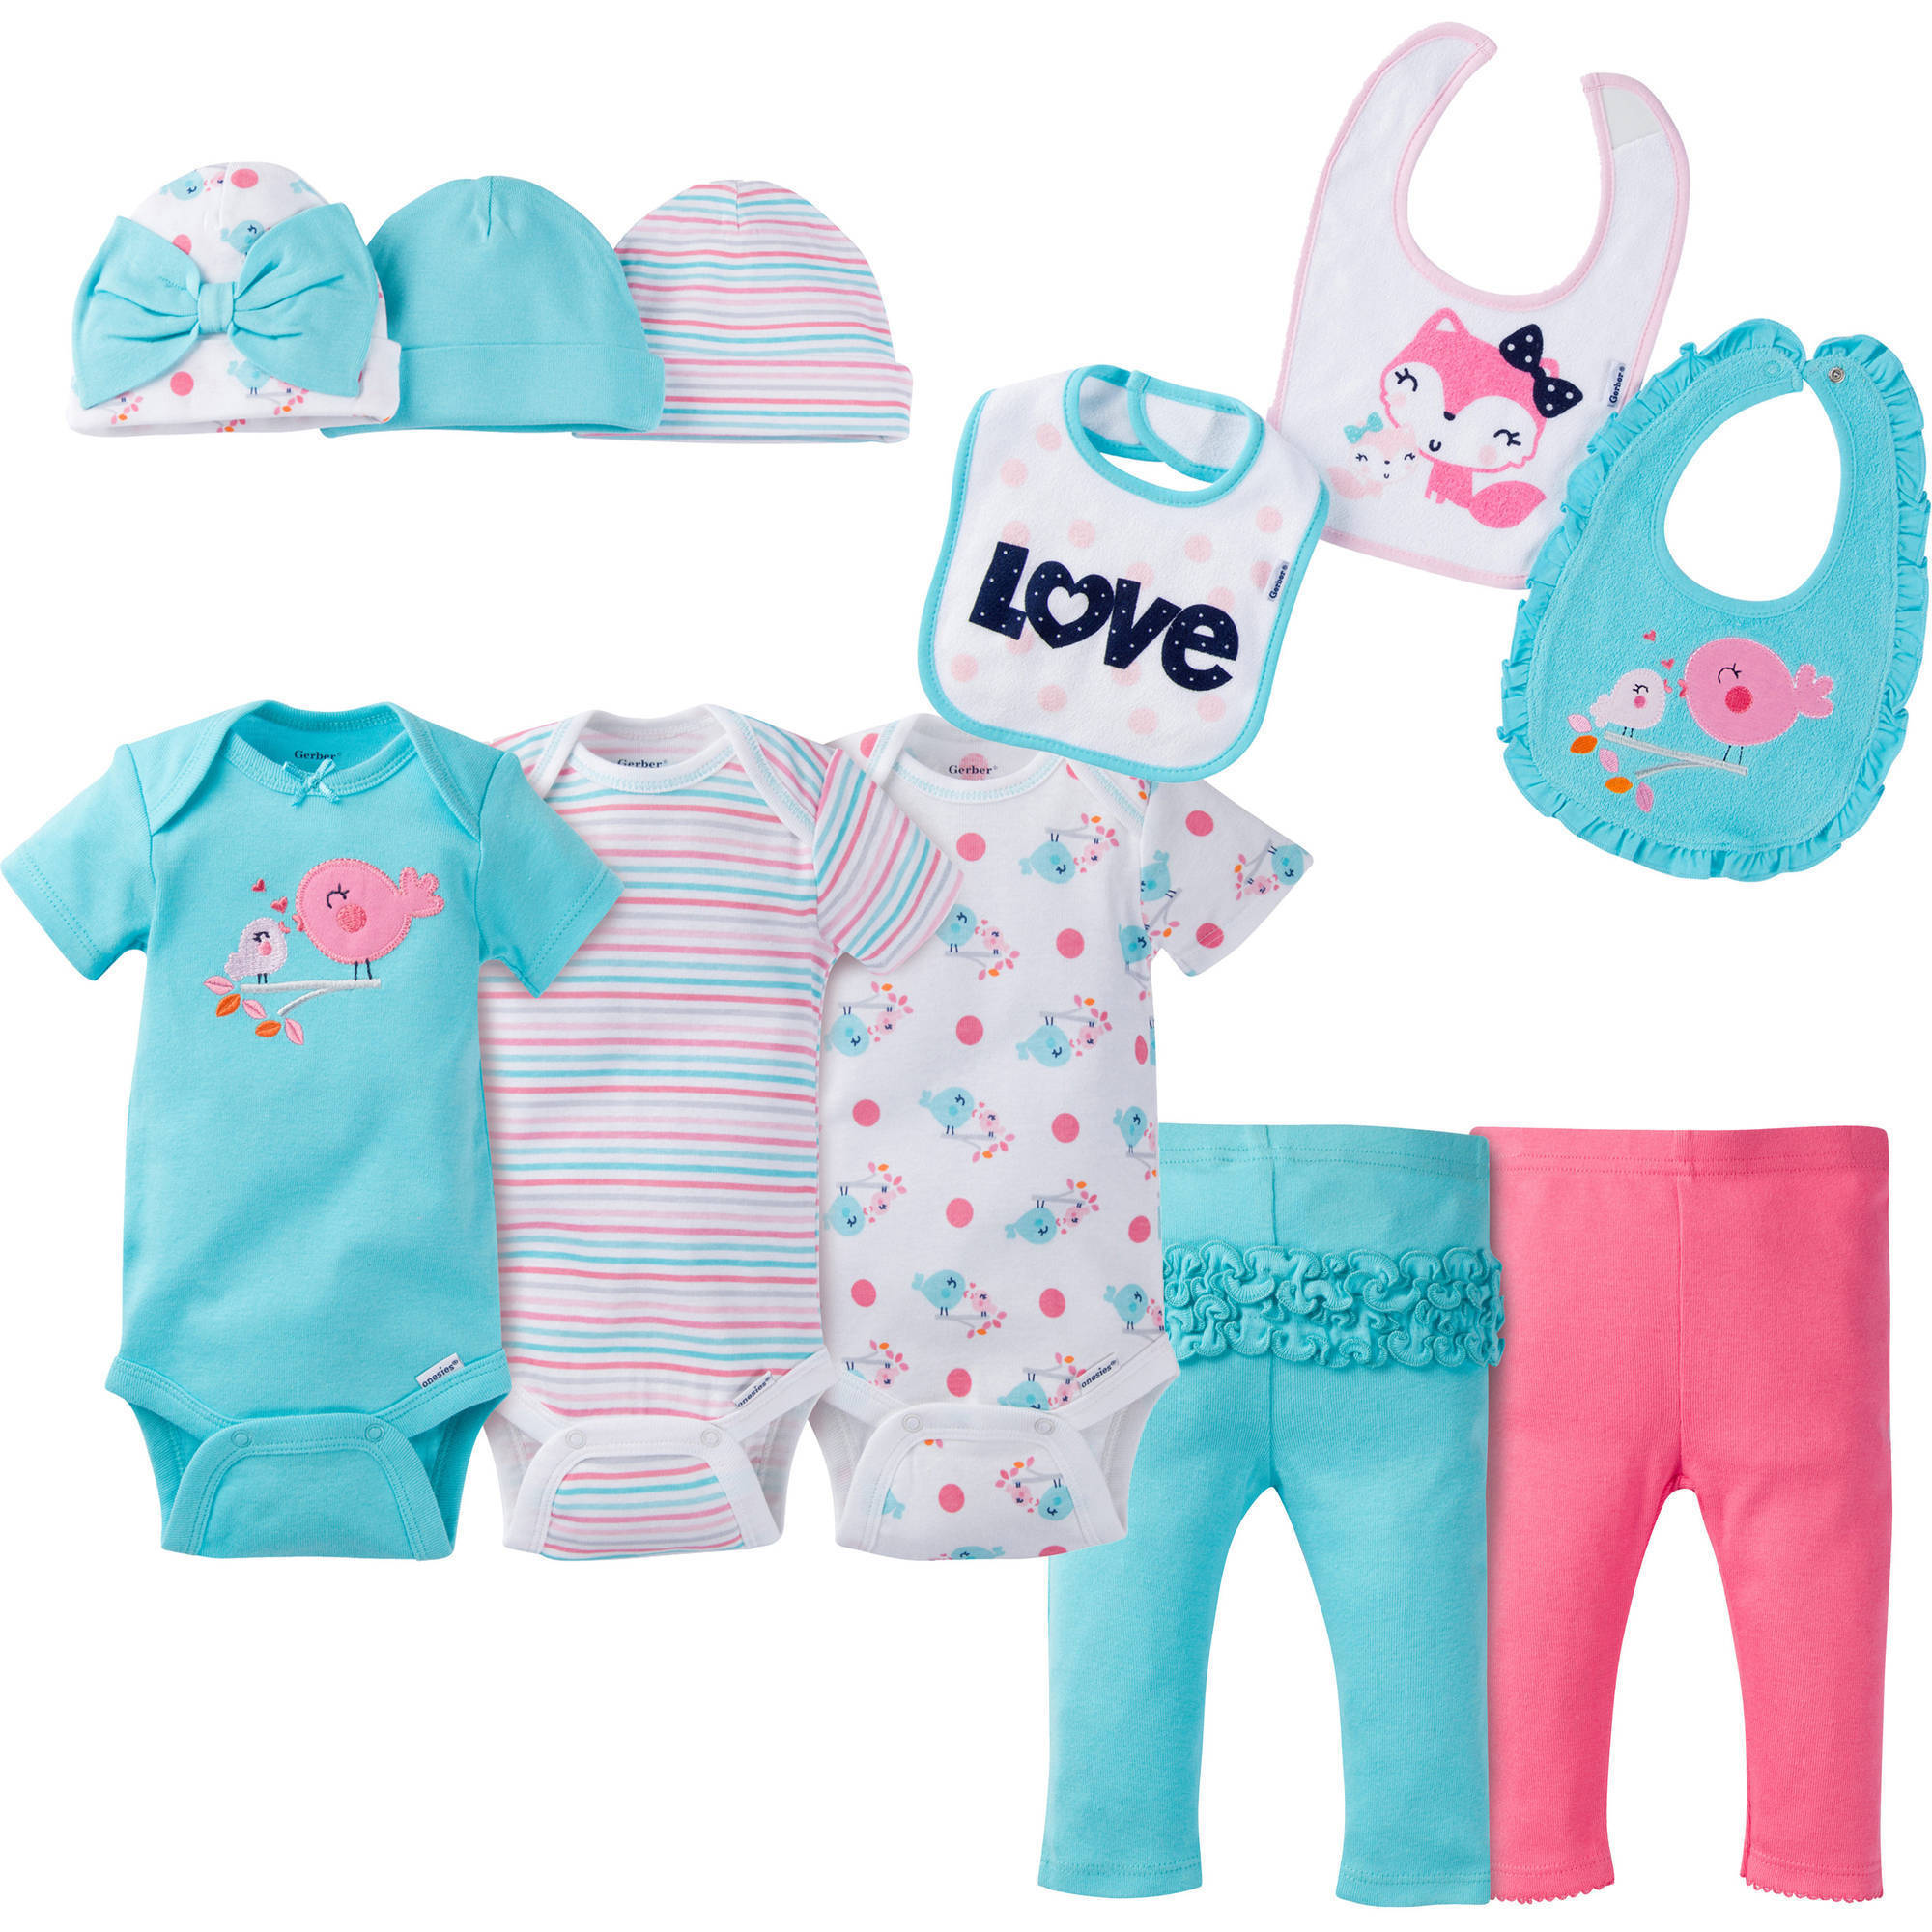 Gerber Newborn Baby Girl Perfect Baby Shower Gift 11-Piece Layette Set, Ages 0-6M